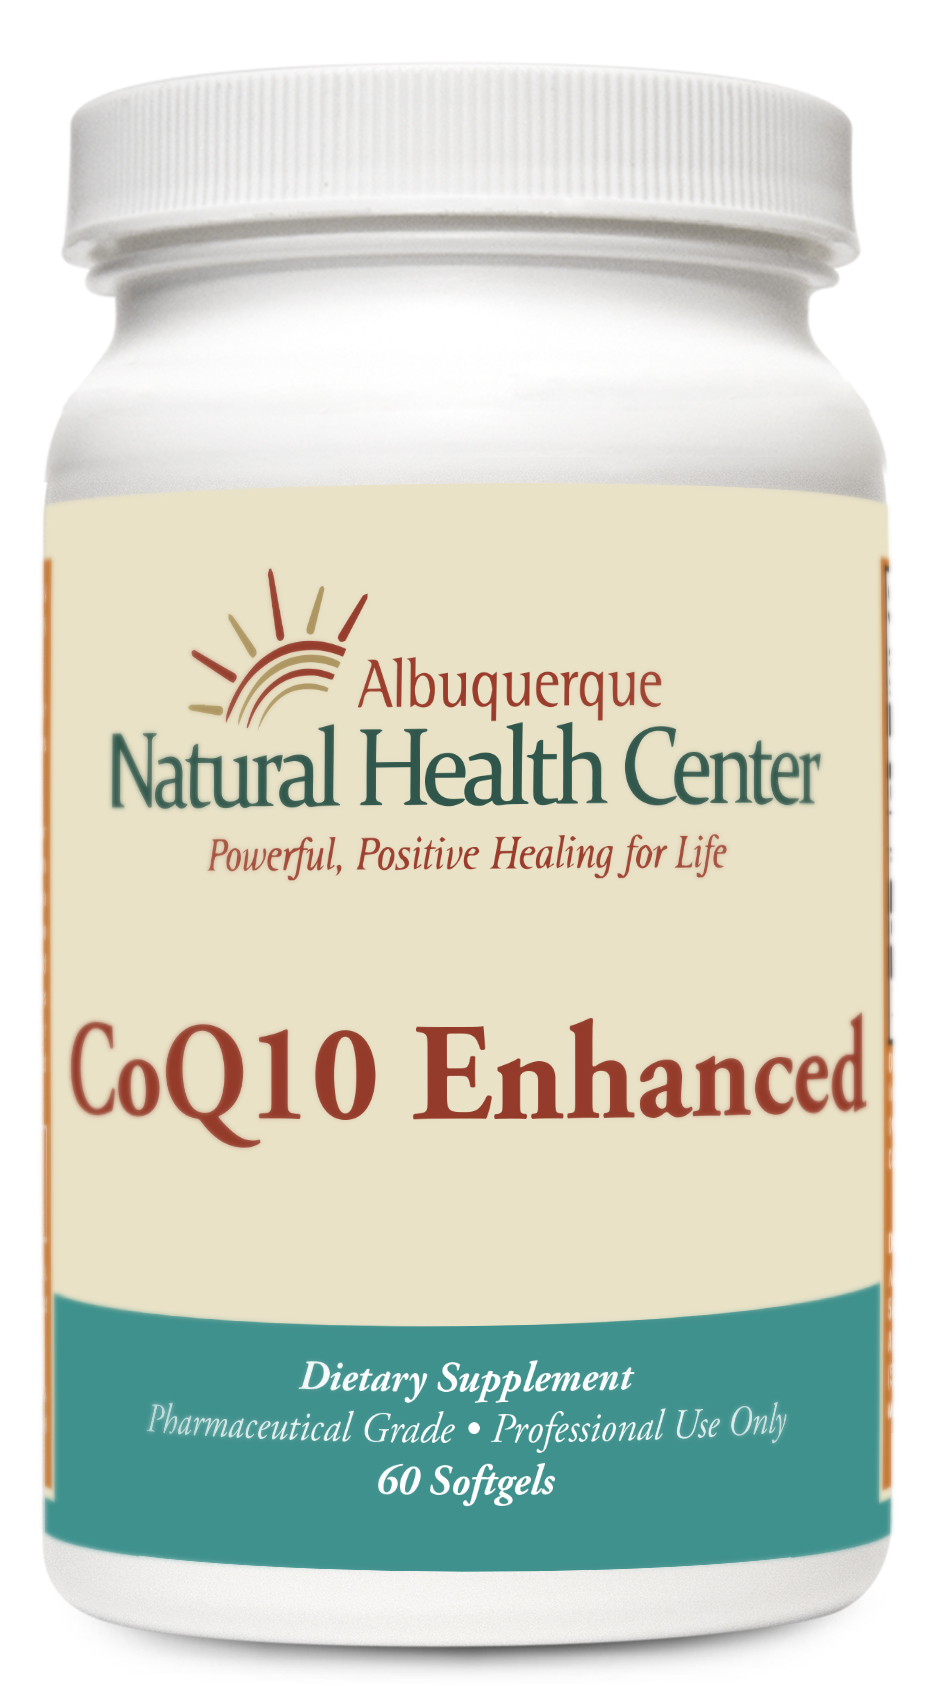 Heart Healthy with COQ- 10 Enhanced!